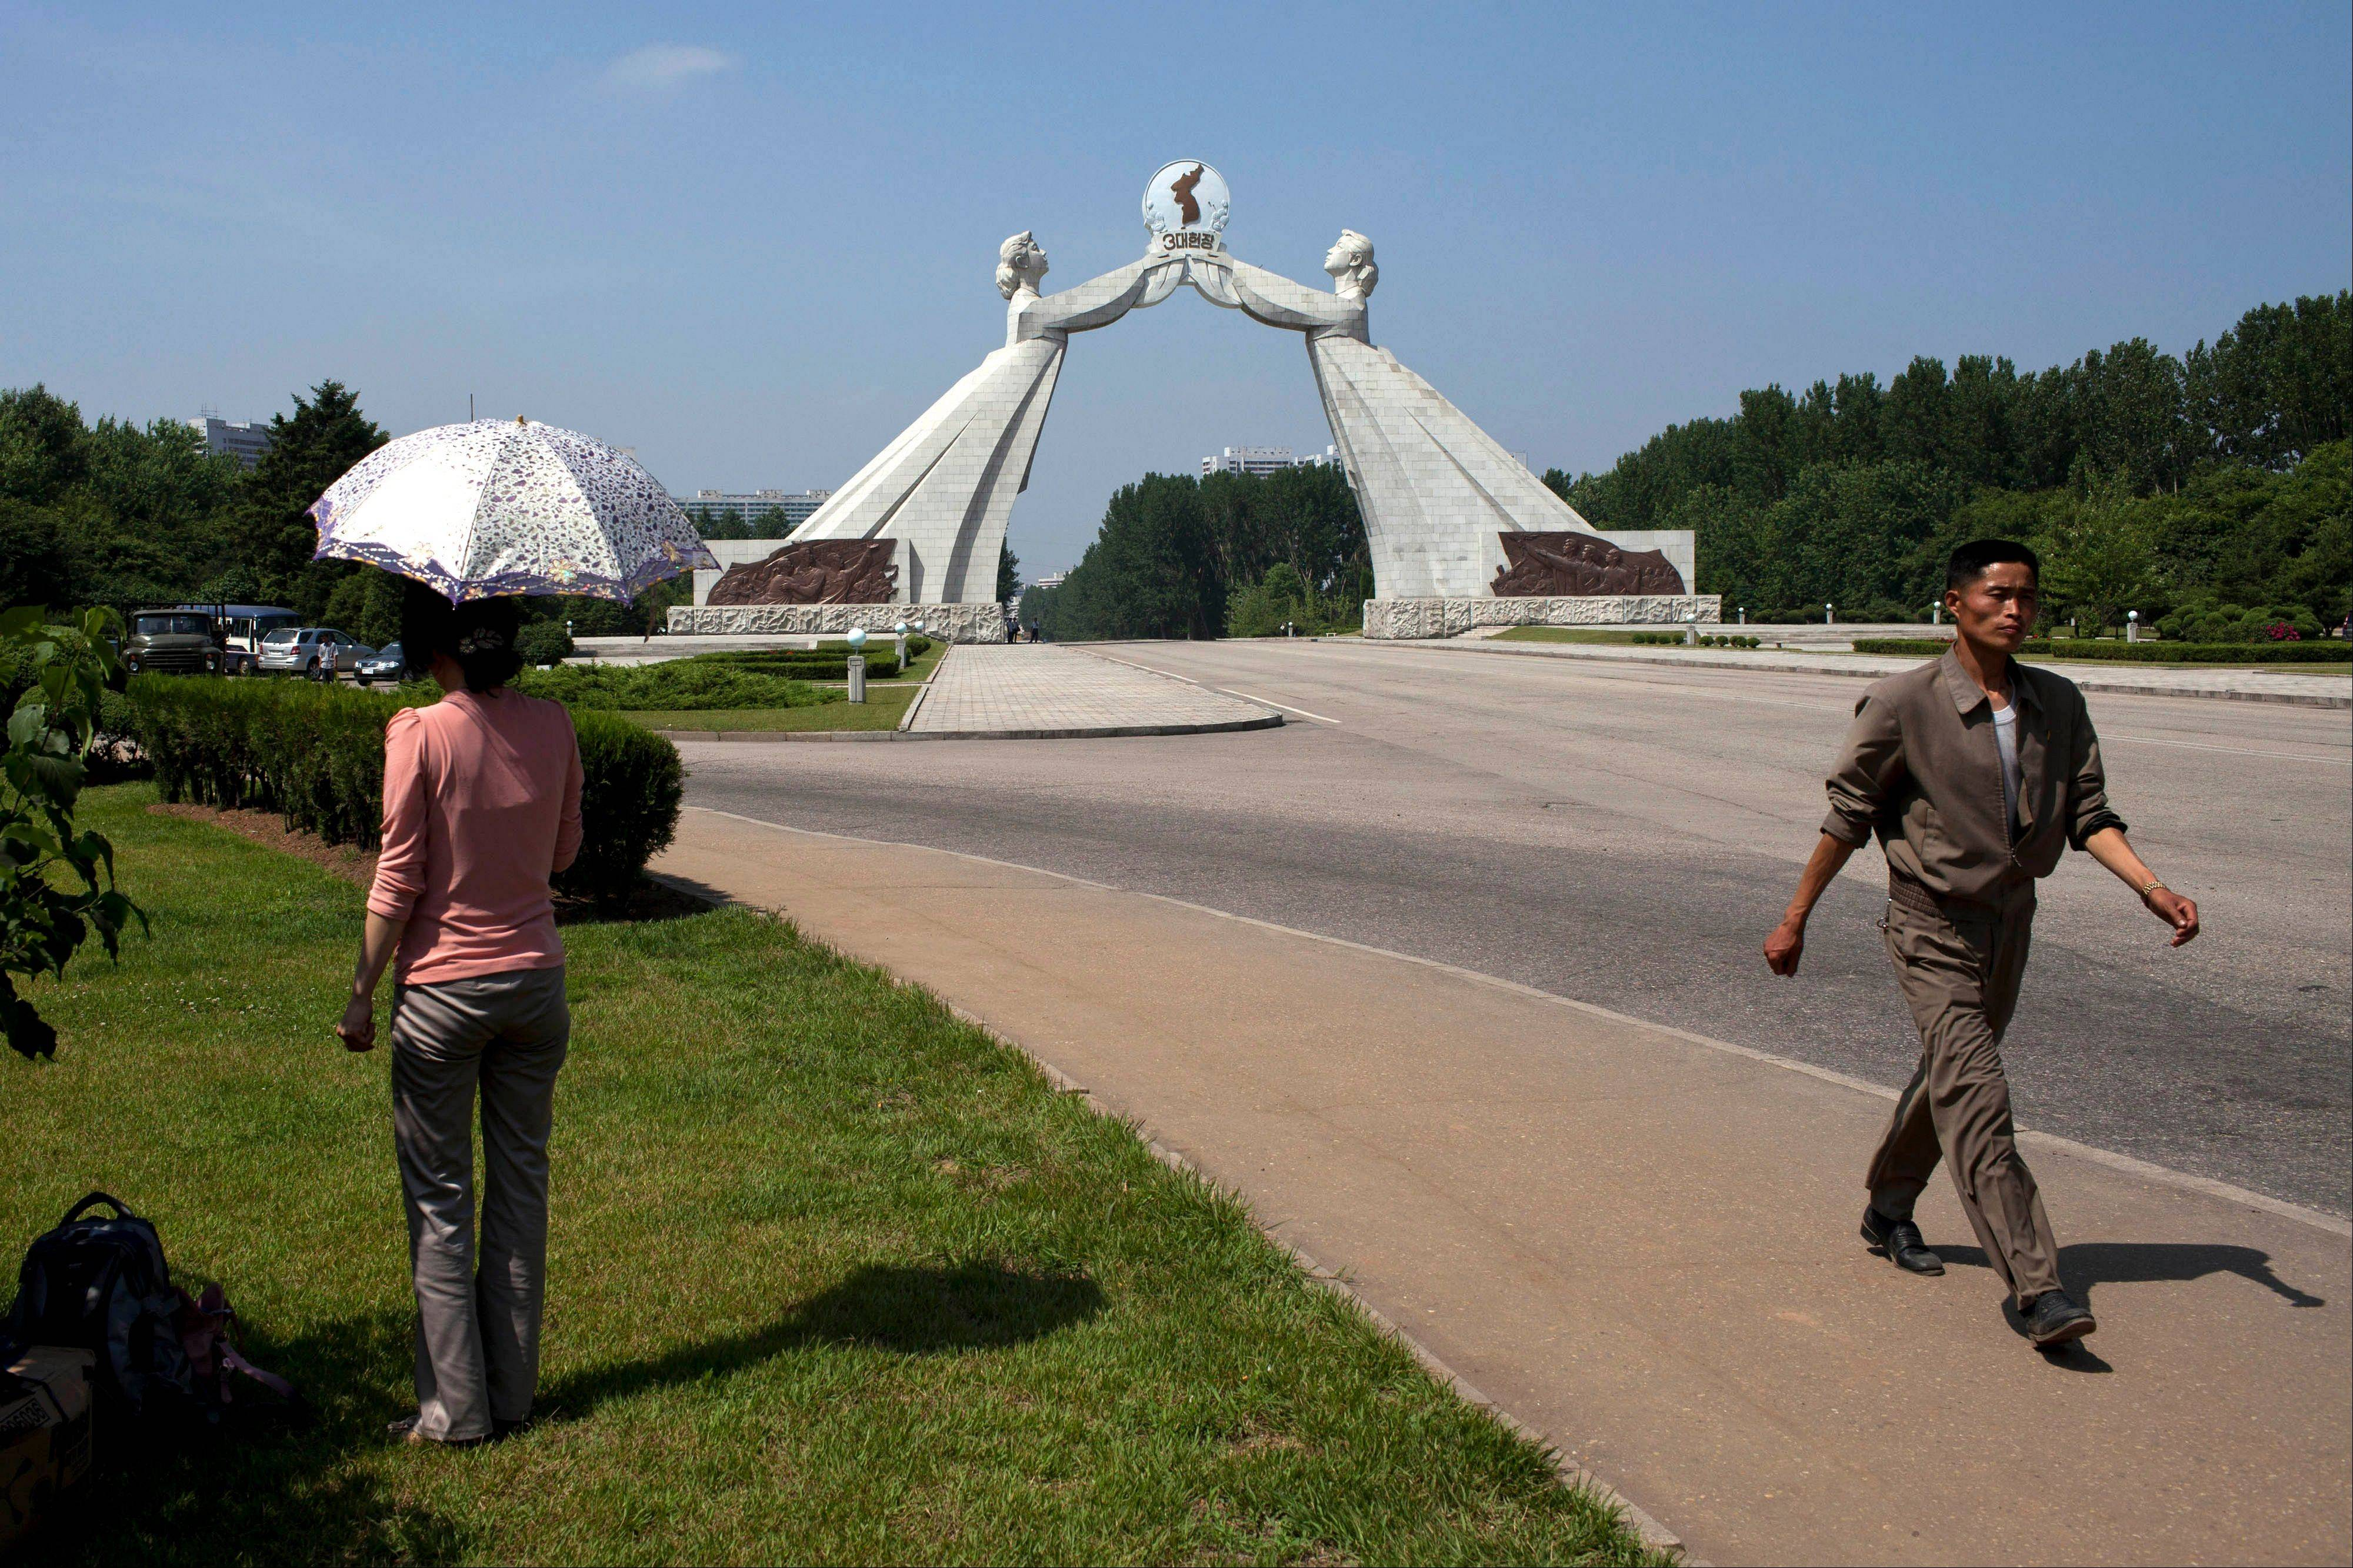 A woman rests under an umbrella while a man walks past her Saturday near a statue known as the Monument to the Three Charters for National Reunification, which symbolizes the hope for eventual reunification of the two Koreas, in Pyongyang, North Korea. In past years, the monument built over the road leading to South Korea has been the site of celebrations marking a joint reconciliation declaration signed by the two Koreas on June 15, 2000. This year's events were canceled after high-level talks between the Seoul and Pyongyang governments, the first in six years, were called off earlier in the week.